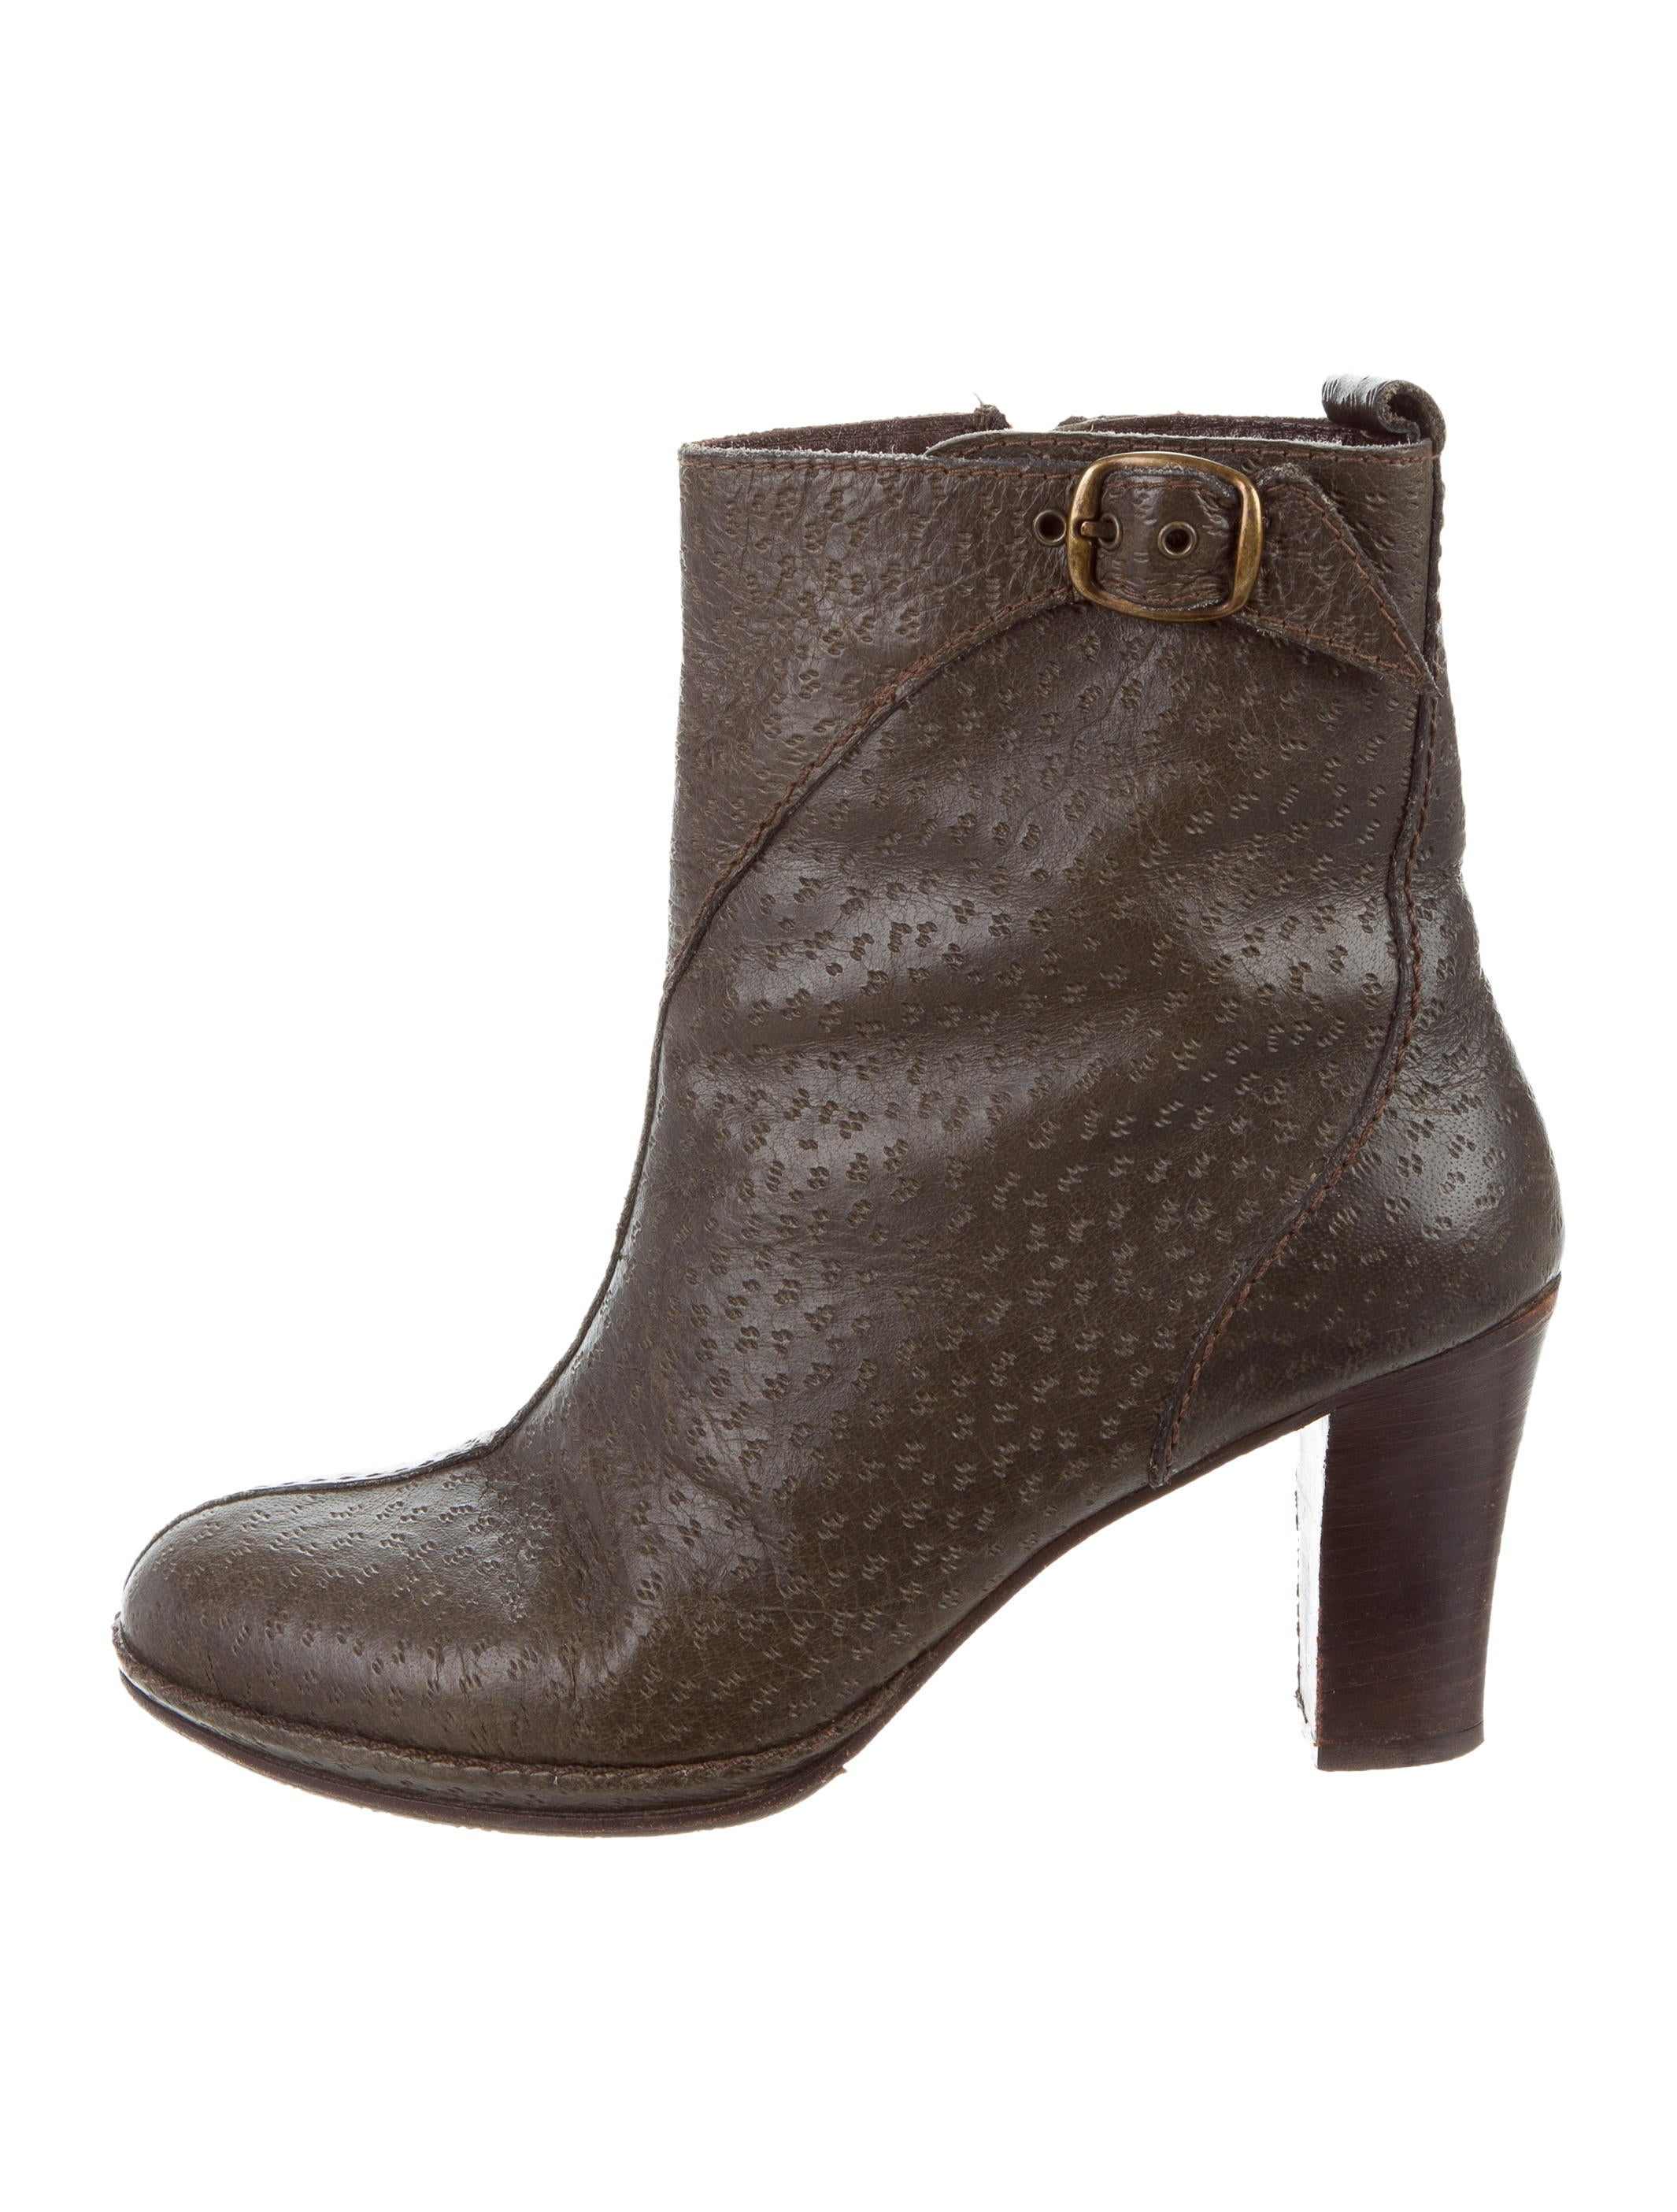 Henry Beguelin Embossed Suede Ankle Boots cheap geniue stockist buy cheap 2014 newest under $60 sale online sale for nice outlet cheap prices 0a50p4d5